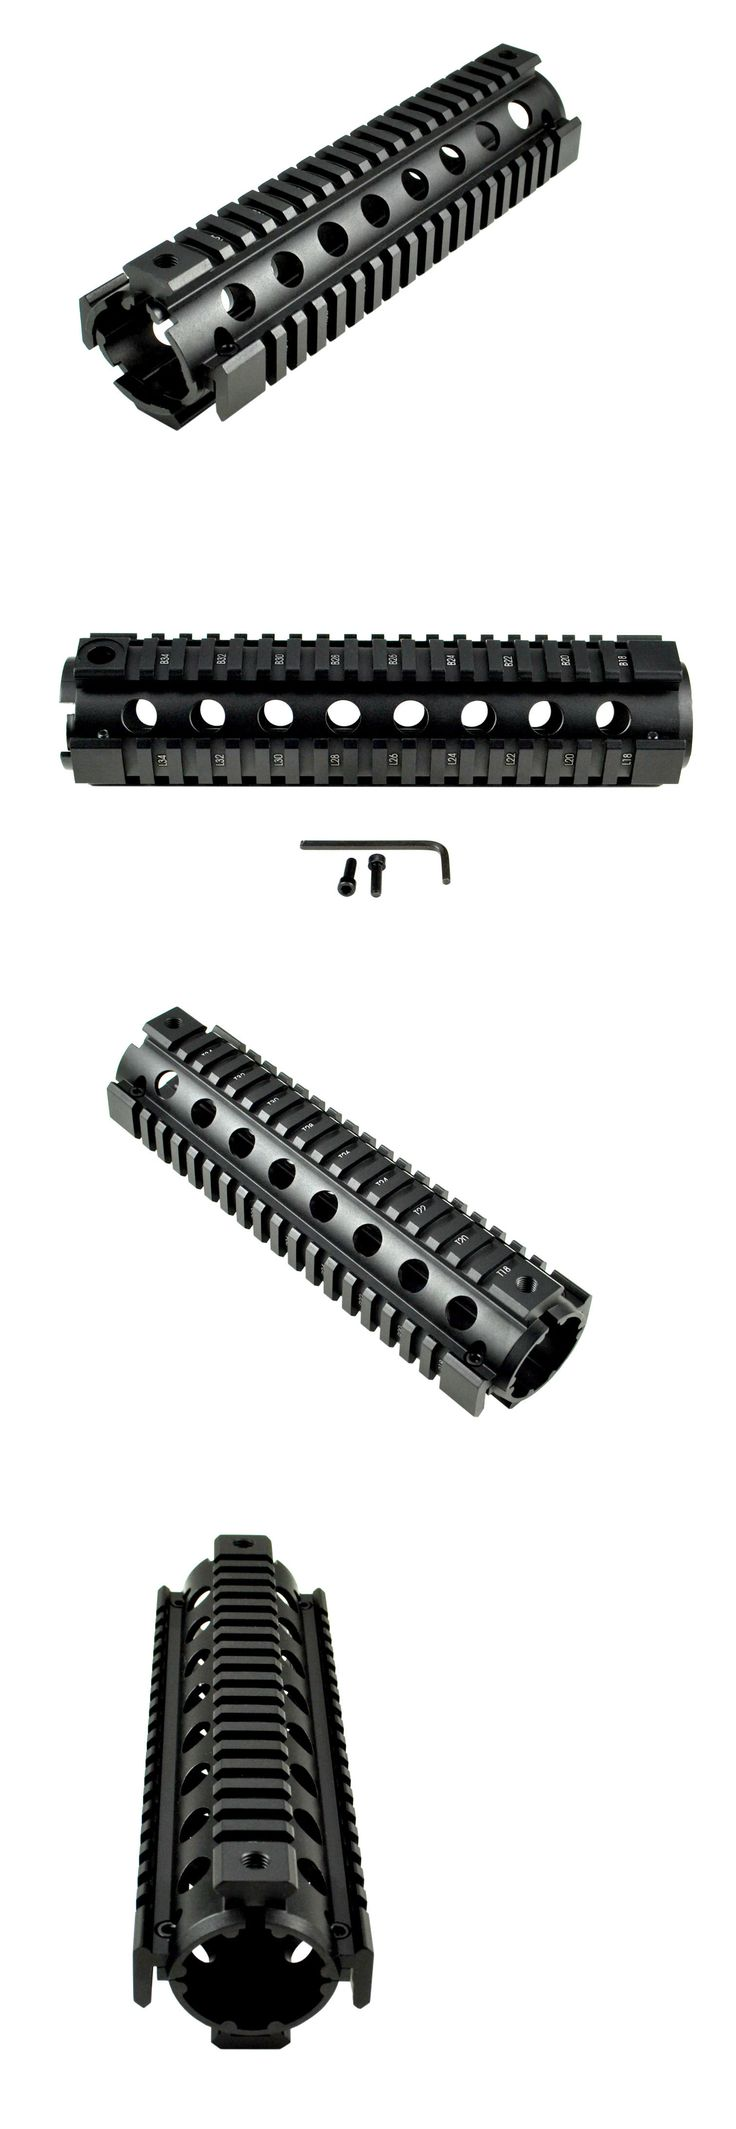 Other Outdoor Sports 159048: Sniper 9 Handguard Quad Rail Fit Triangle End Drop In Two Piece .223 556 BUY IT NOW ONLY: $31.95